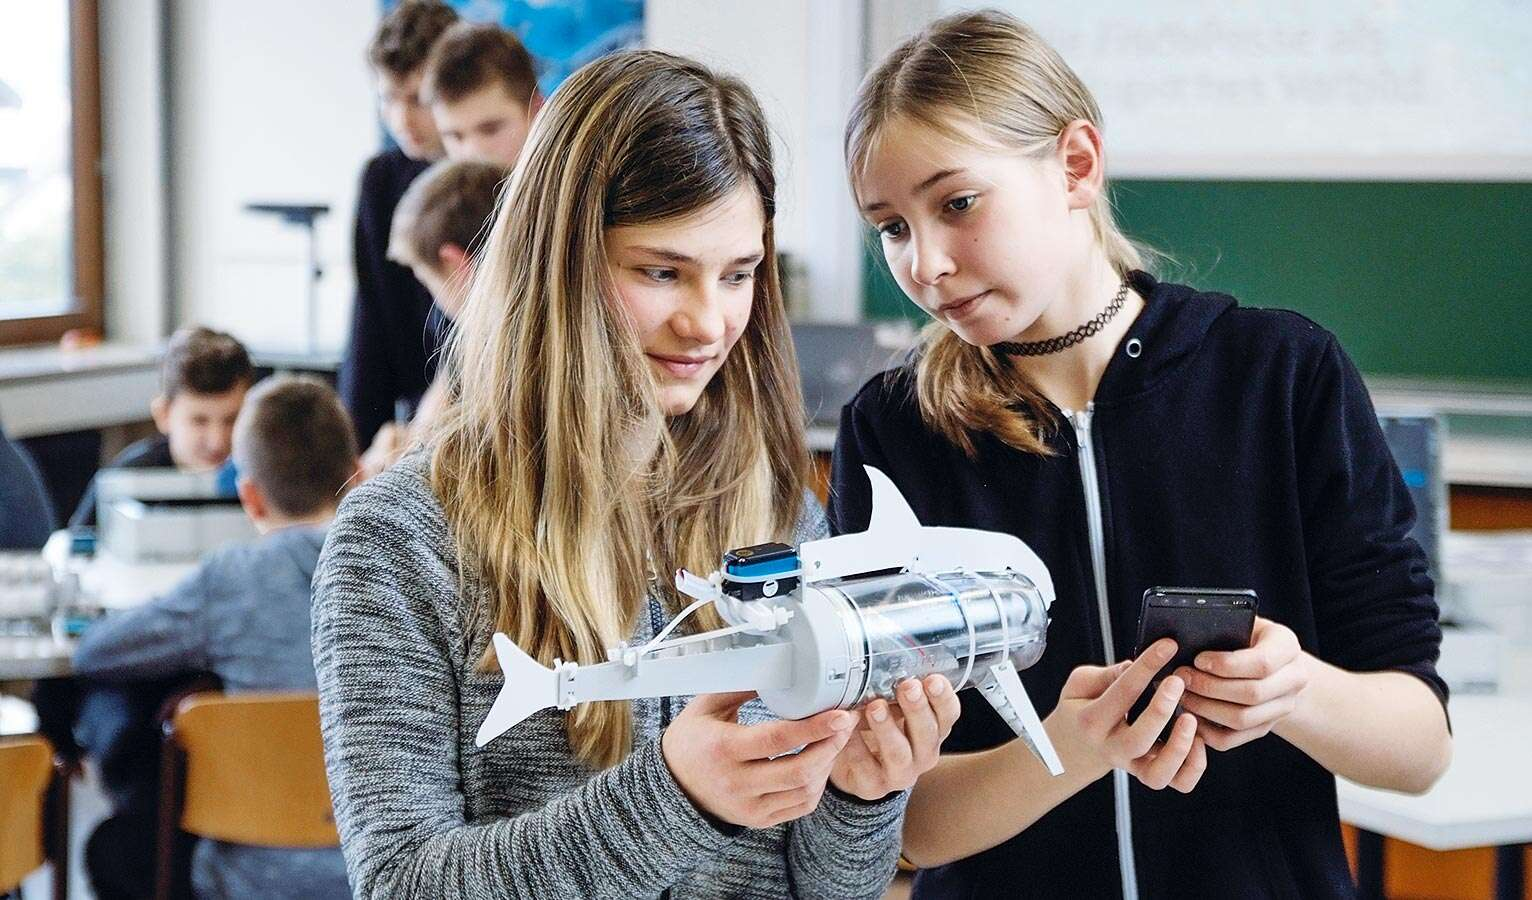 Bionics4Education